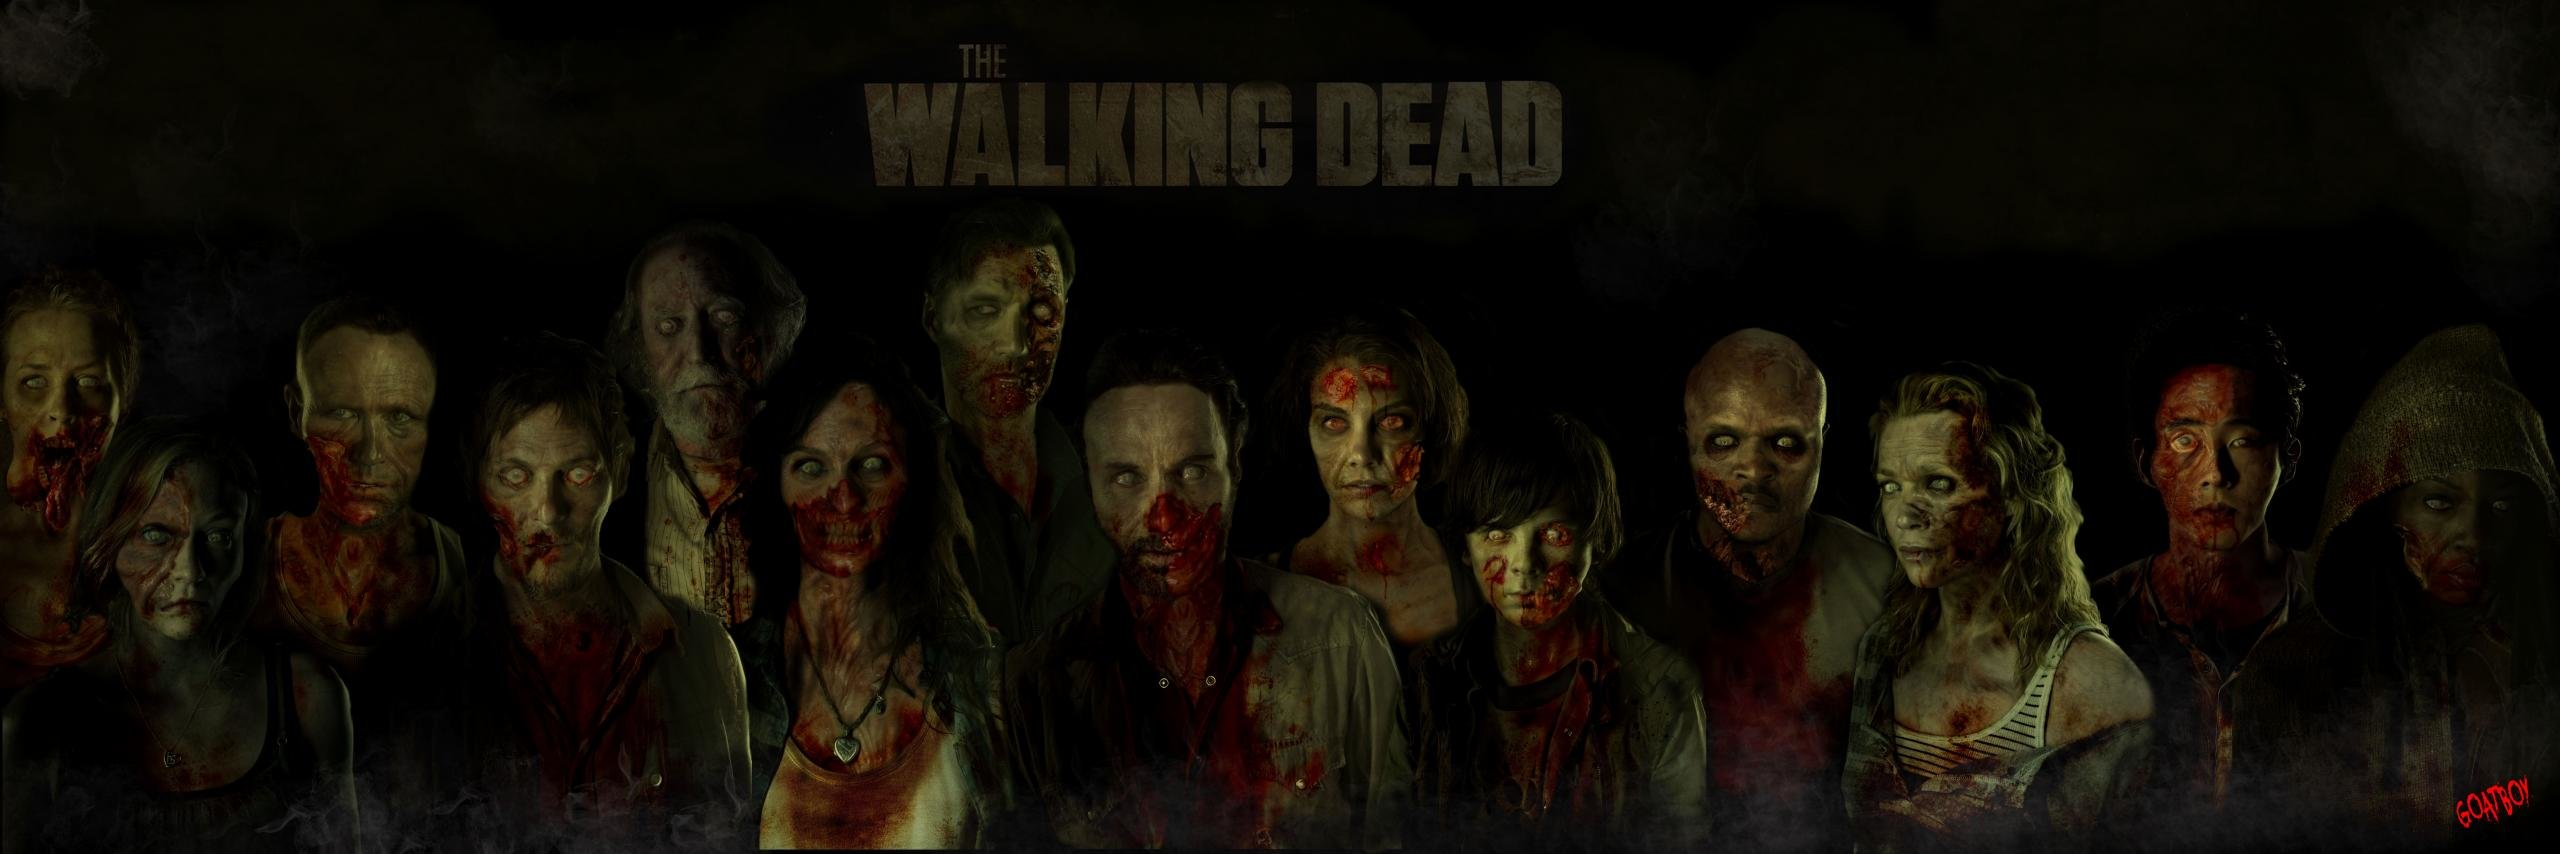 Awesome The Walking Dead free wallpaper ID:190232 for dual monitor 2560x854 PC